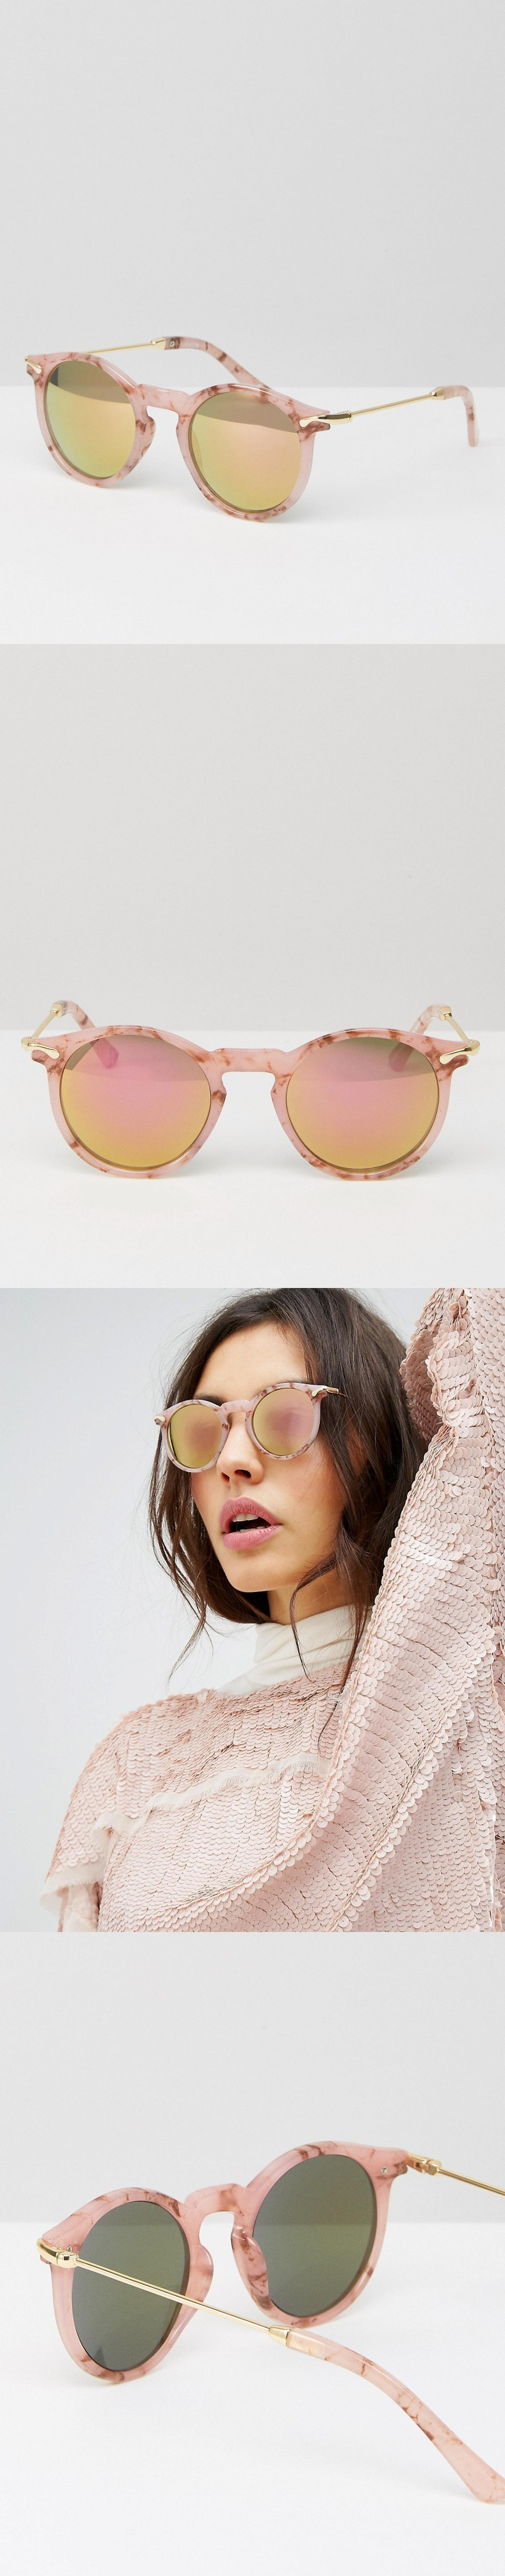 Round Sunglasses With Metal Arms And Flash Lens In Pink Marble - Pink Asos wALsb